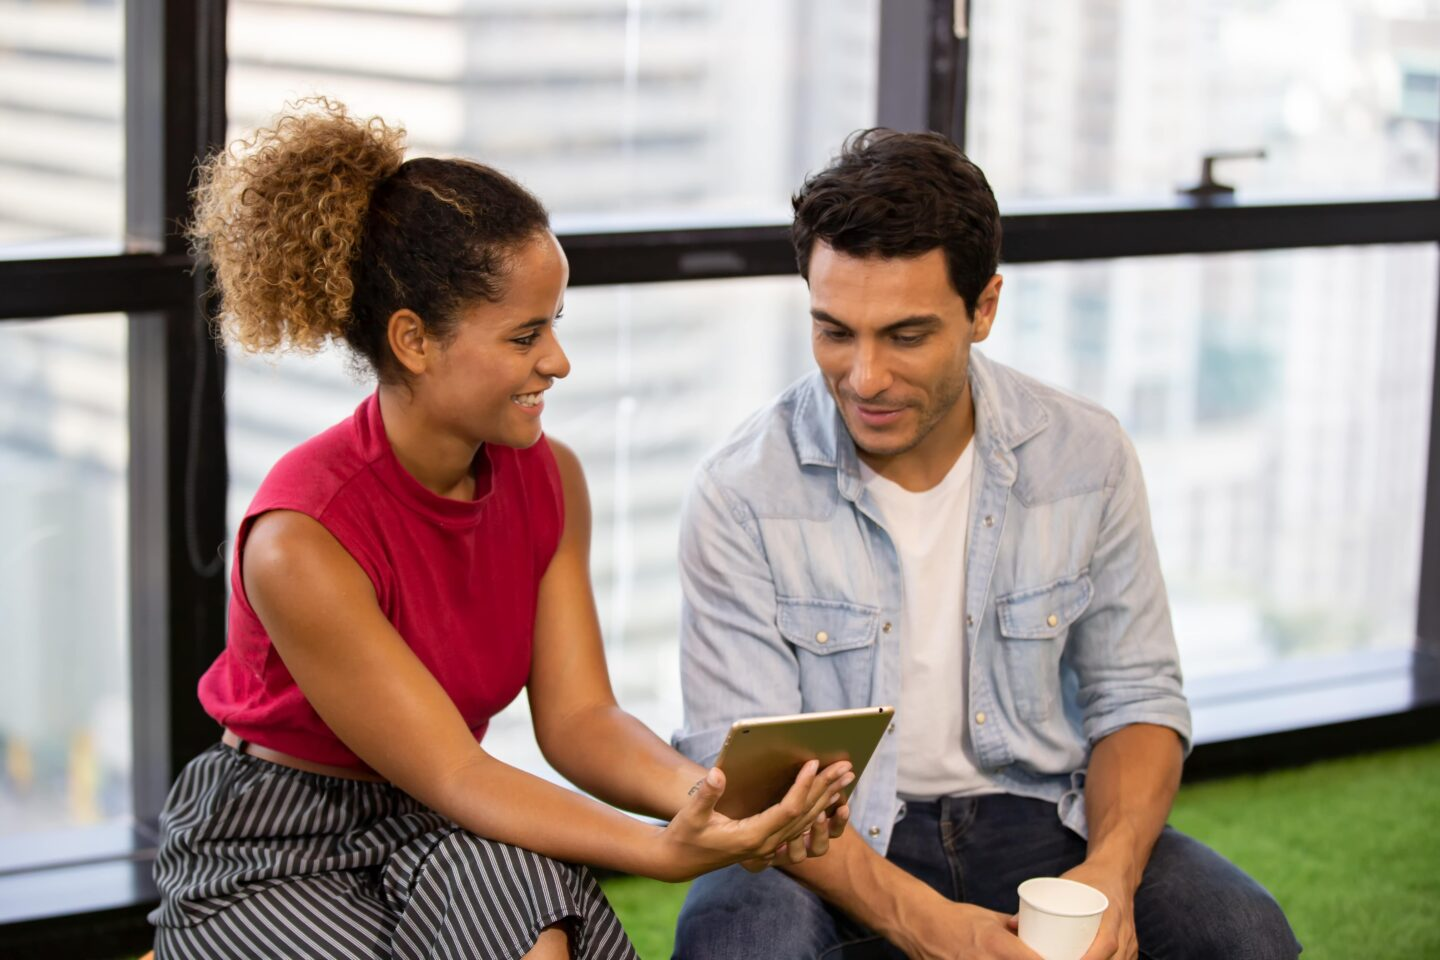 Young professional - making friends in your 20s at work